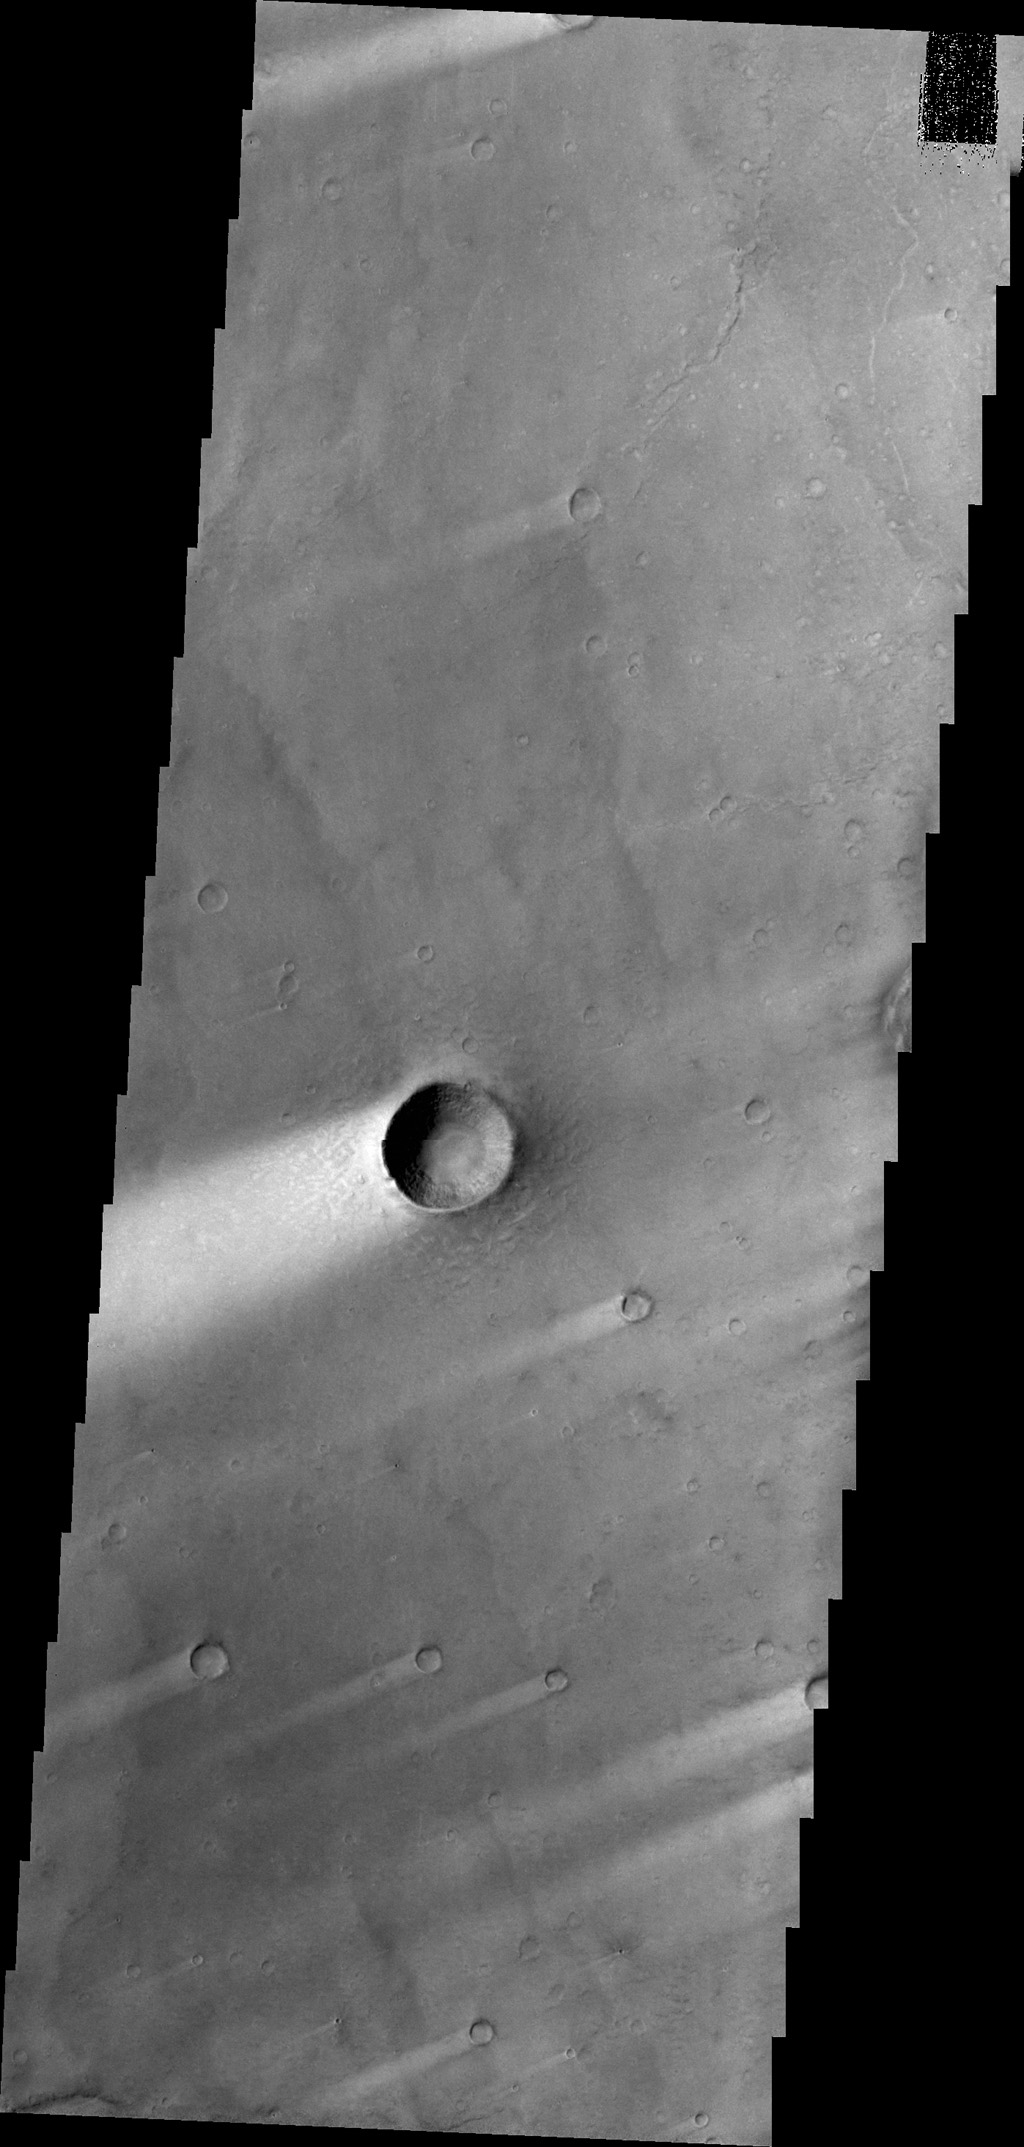 Windstreaks, like the ones in this image from NASA's 2001 Mars Odyssey spacecraft, are a common feature on the plains of Syrtis Major Planum.